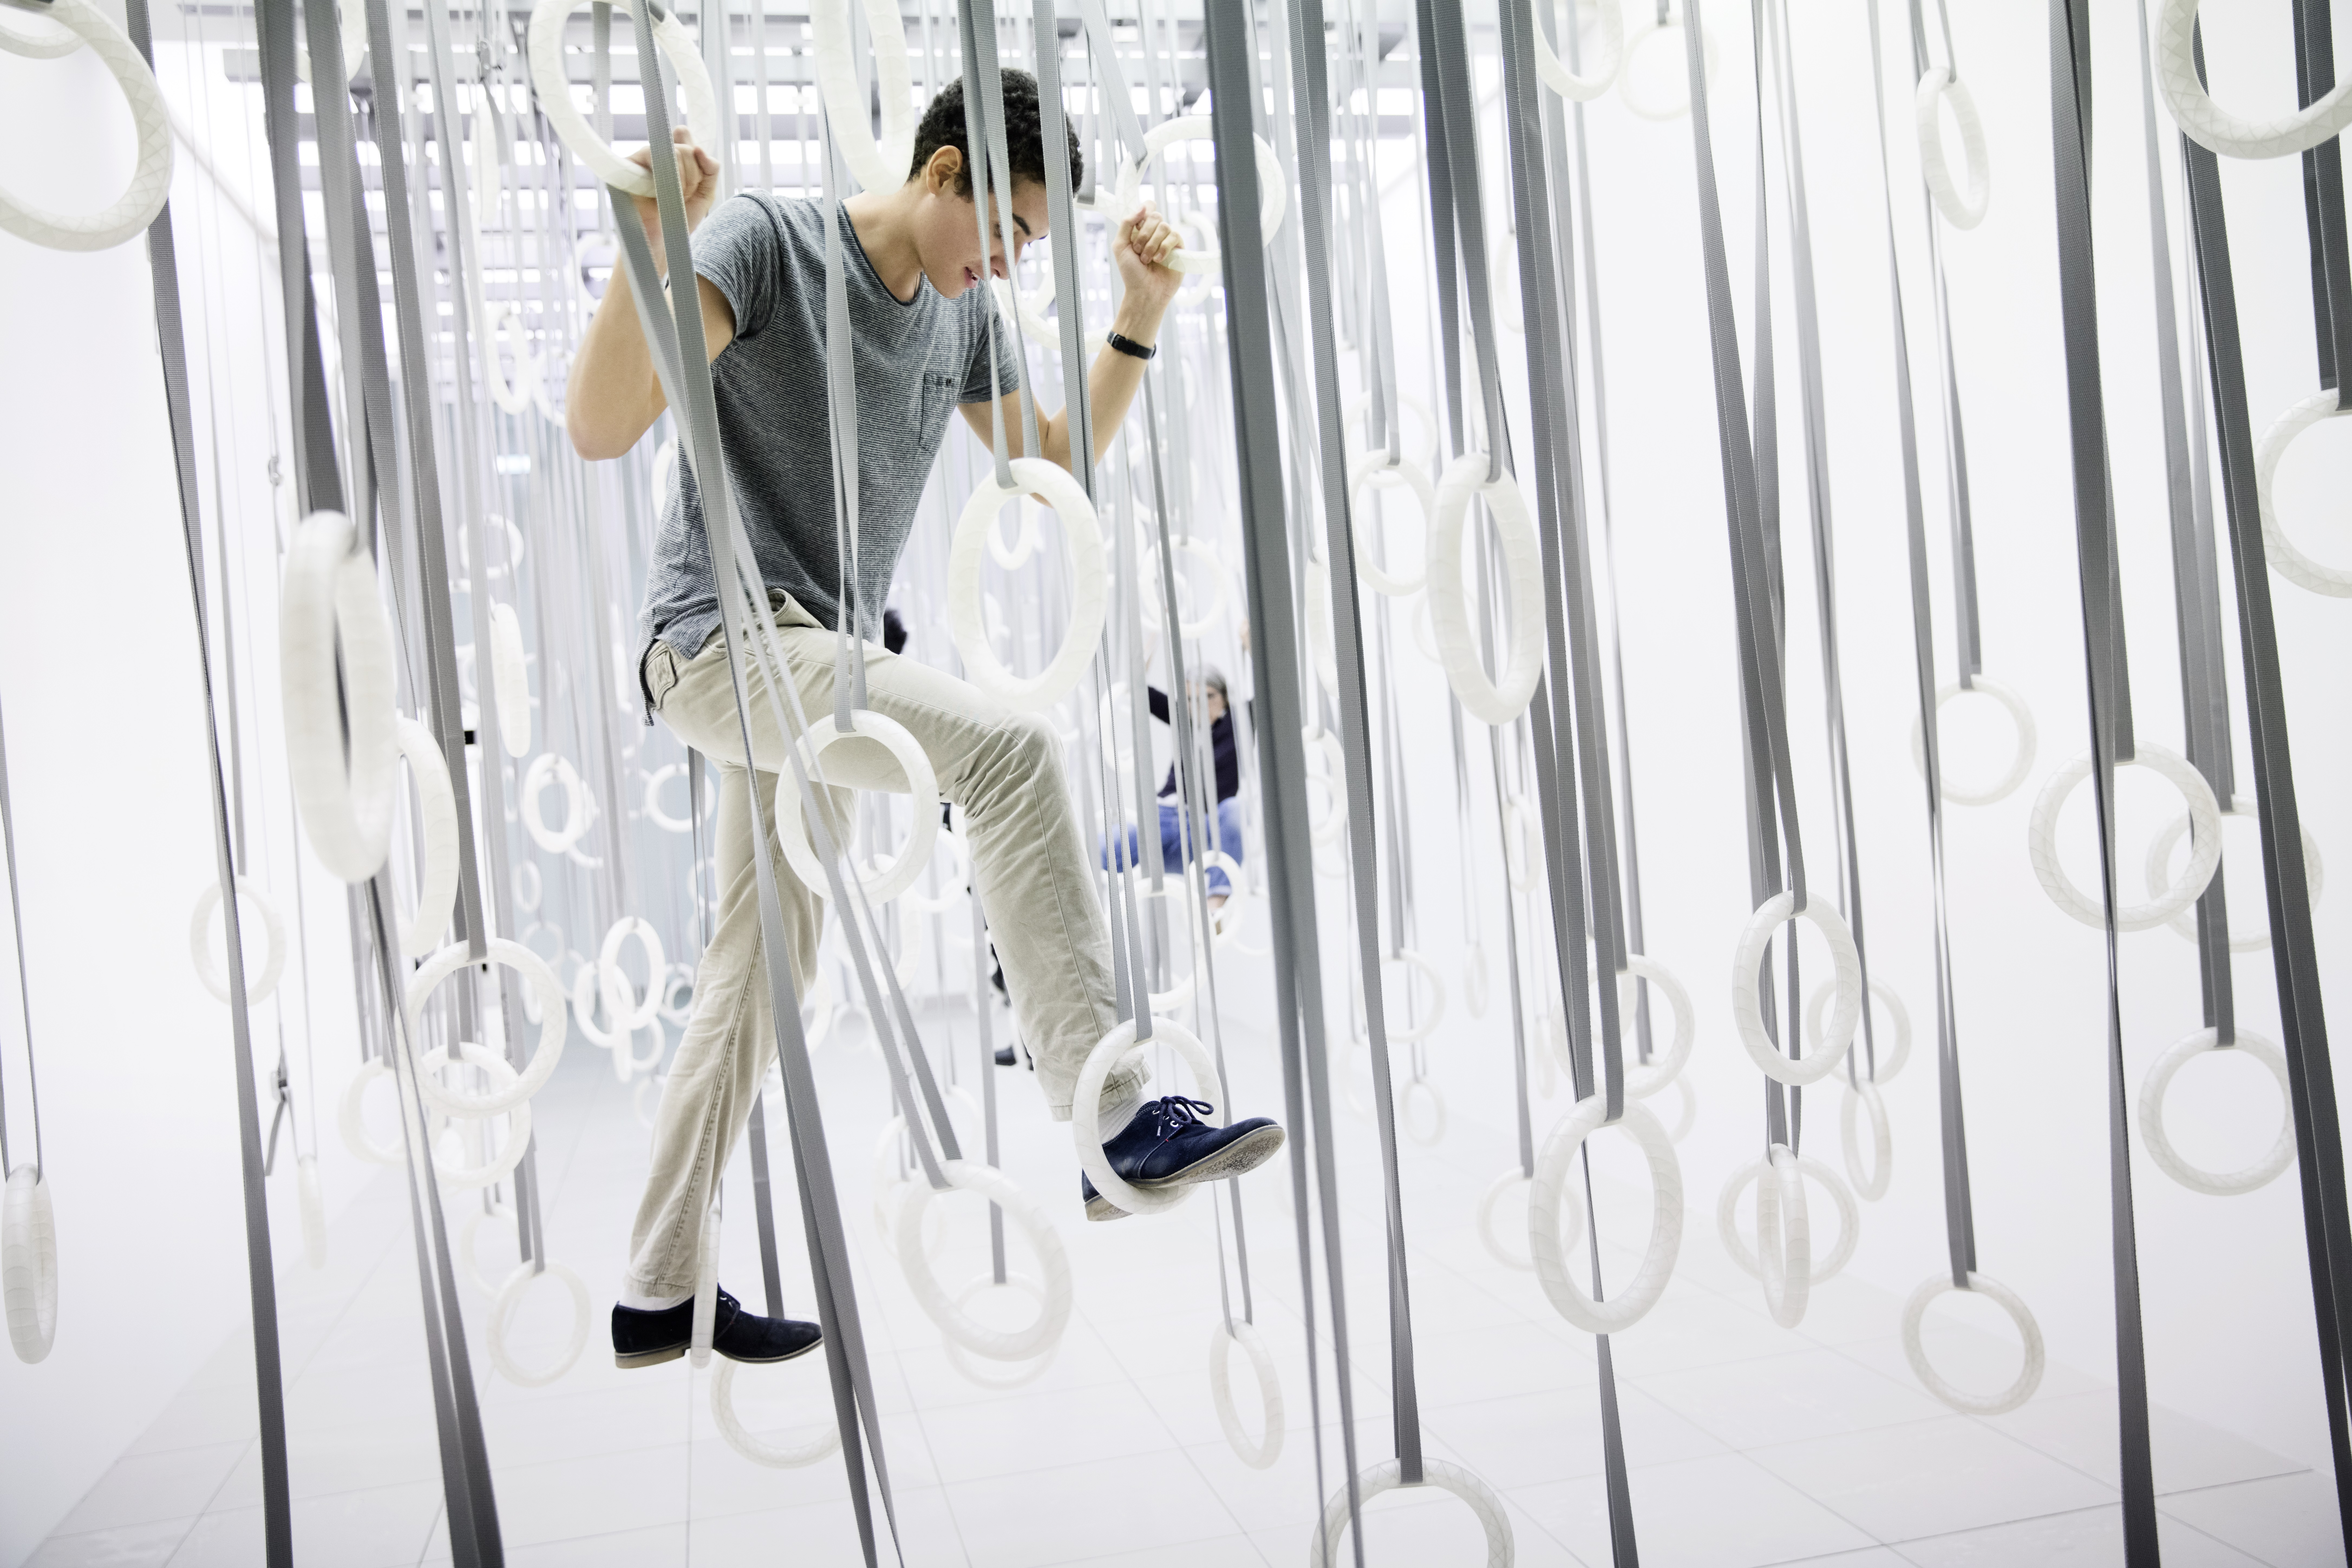 WilliamForsythe_TheFactOfMatter_GymRings1_PhotoCredit_GoMA_DominikMentzos.jpg